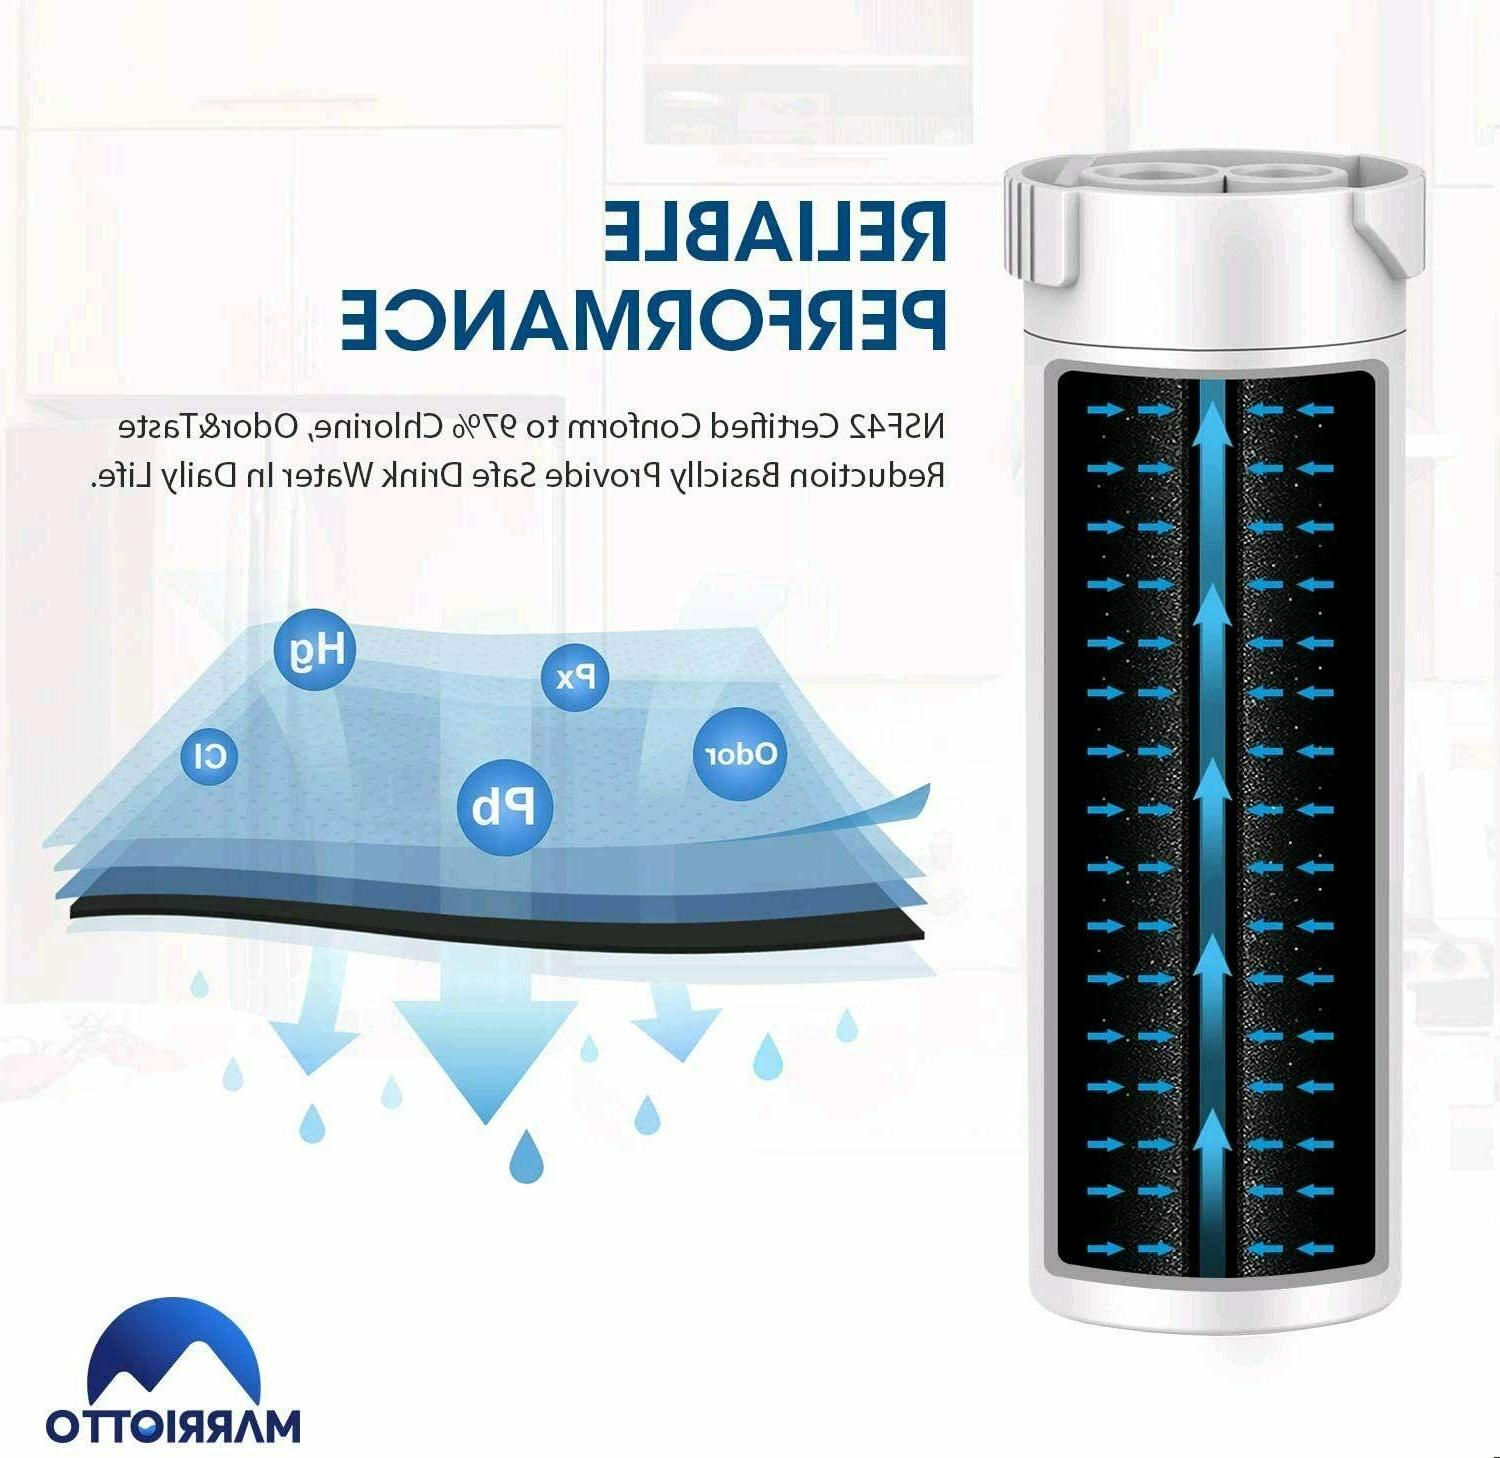 XWF Water Filter,Replacement GE XWF,XWF Refrigerator,NSF/42,2PACK